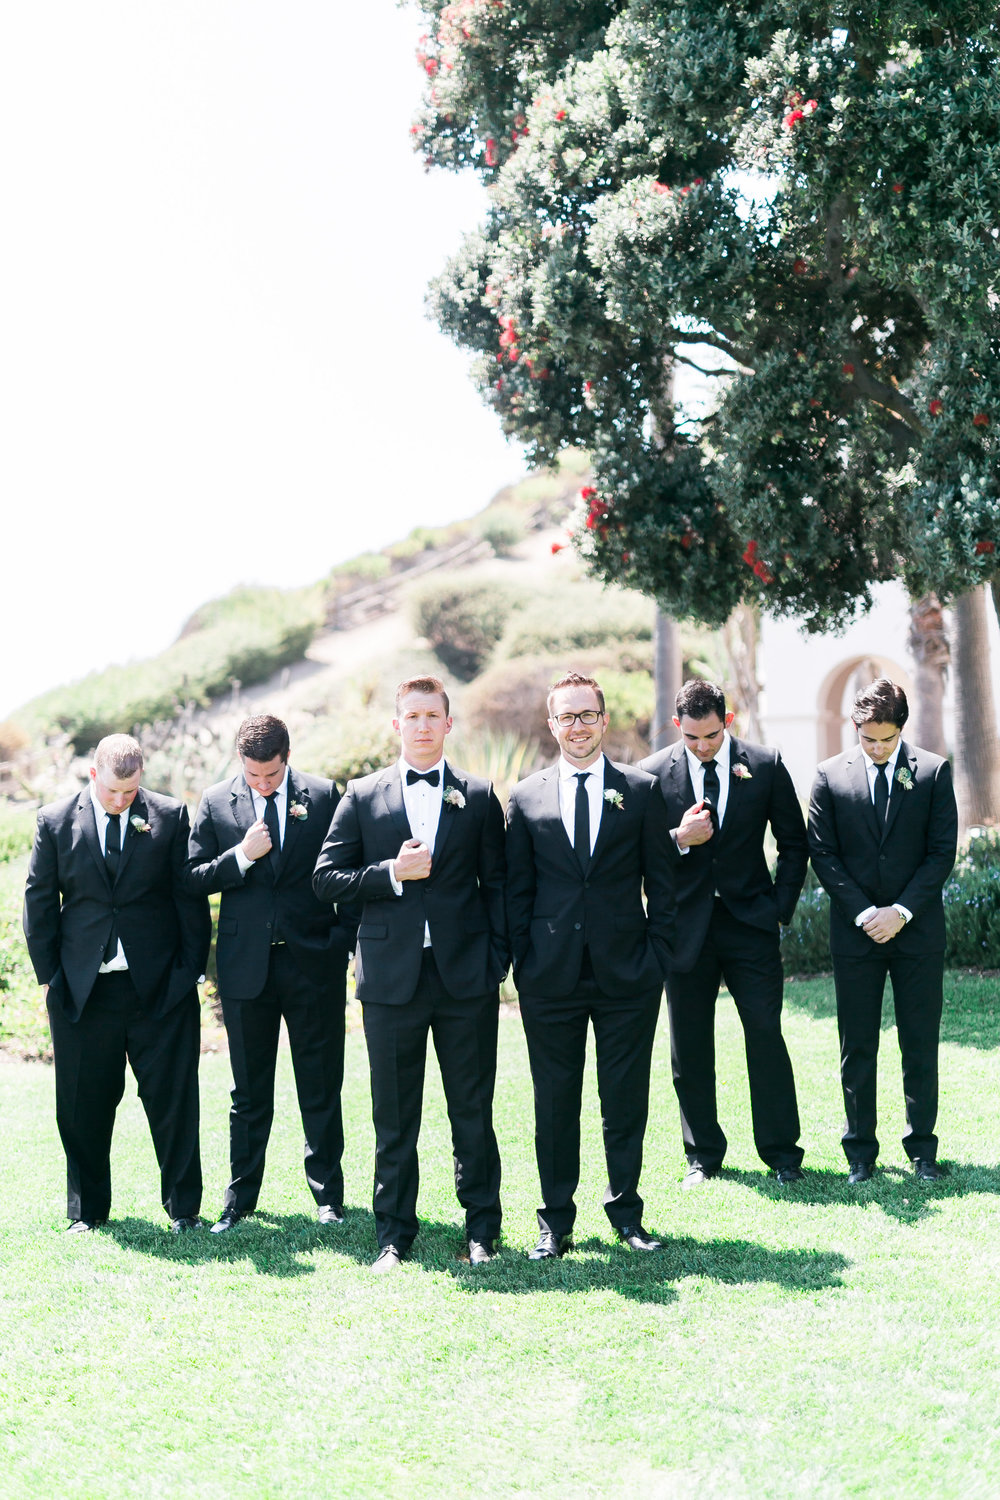 Groomsmen at The Bacara Santa Barbara.   CREDITS:  Destination Wedding Planner  ANDREA EPPOLITO EVENTS  · Images by  J.ANNE P  HOTOGRAPHY  · Video  HOO FILMS  · Venue Ritz Carlton Bacara Santa Barbara ·Gown  MONIQUE LHULLIER ·Bridesmaids Dresses  SHOW ME YOUR MUMU ·Stationery  SHE PAPERIE ·Bride's Shoes  BADGLEY MISCHKA ·Hair and Makeup  TEAM HAIR AND MAKEUP · Floral  BLUE MAGNOLIA ·Linen  LA TAVOLA ·Decor Rentals  TENT MERCHANT ·Calligraphy  EBB ·Lighting  FIVE STAR AV ·Ice Cream Station  MCCONNELL'S ICE CREAM